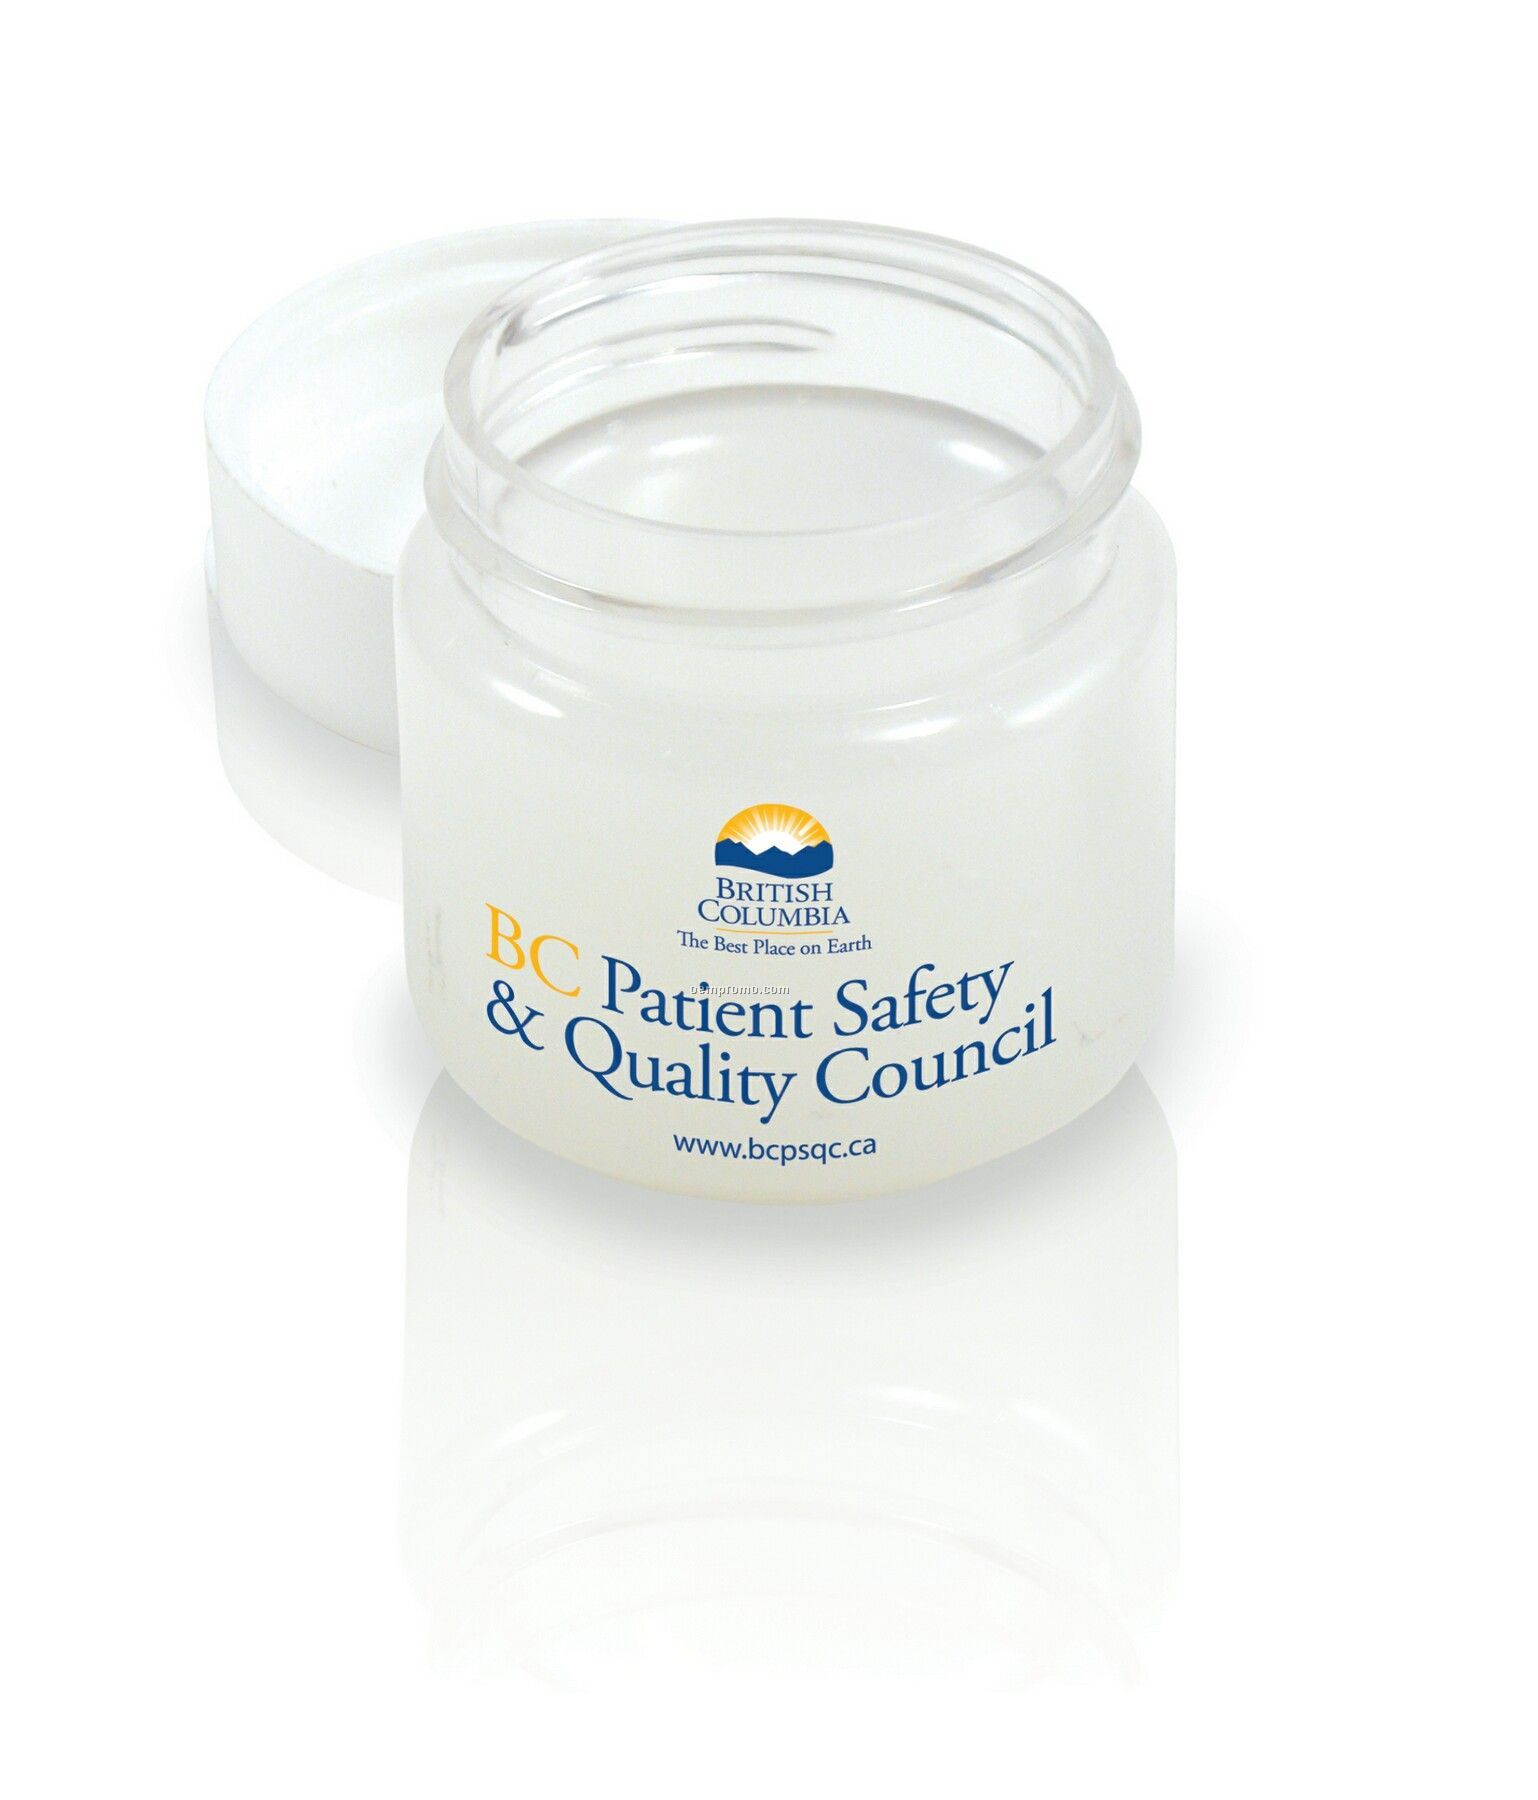 Clear Jar, White Lid 0.63 Oz Net Weight